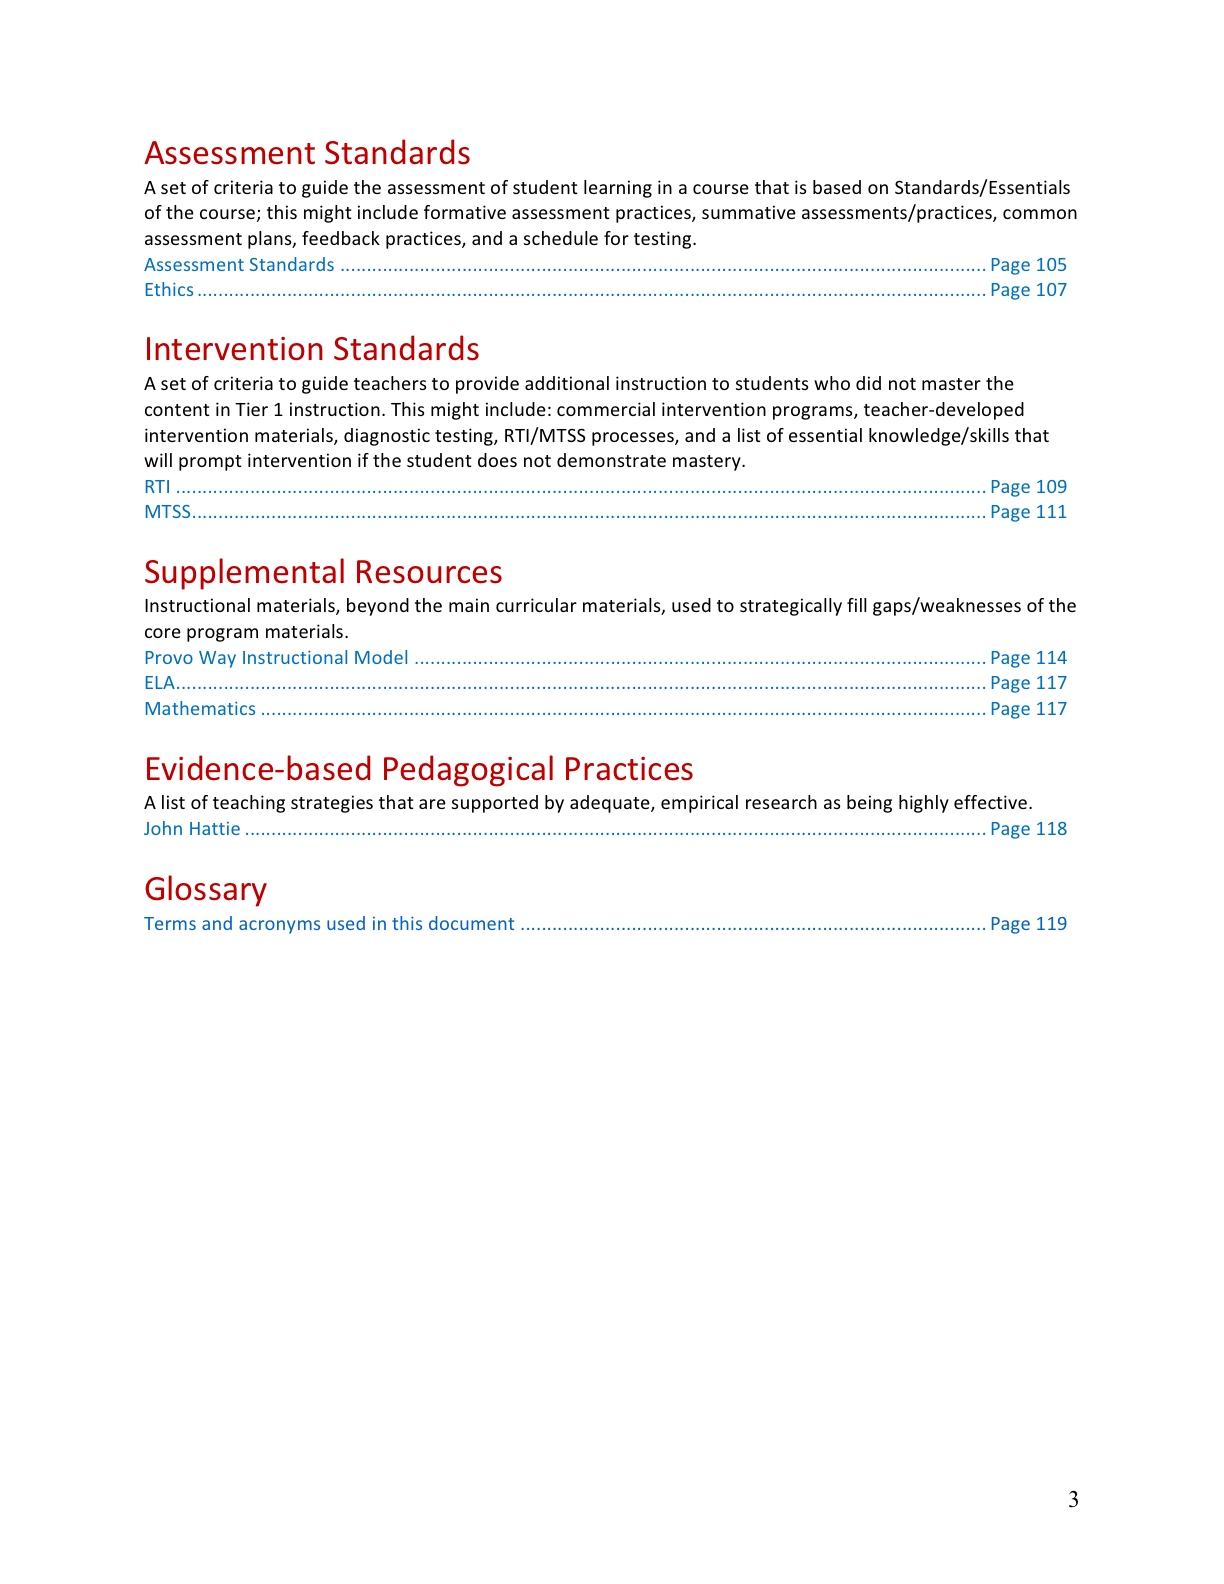 Grade 2 Curriculum Notebook Pages 101 - 119 - Text Version